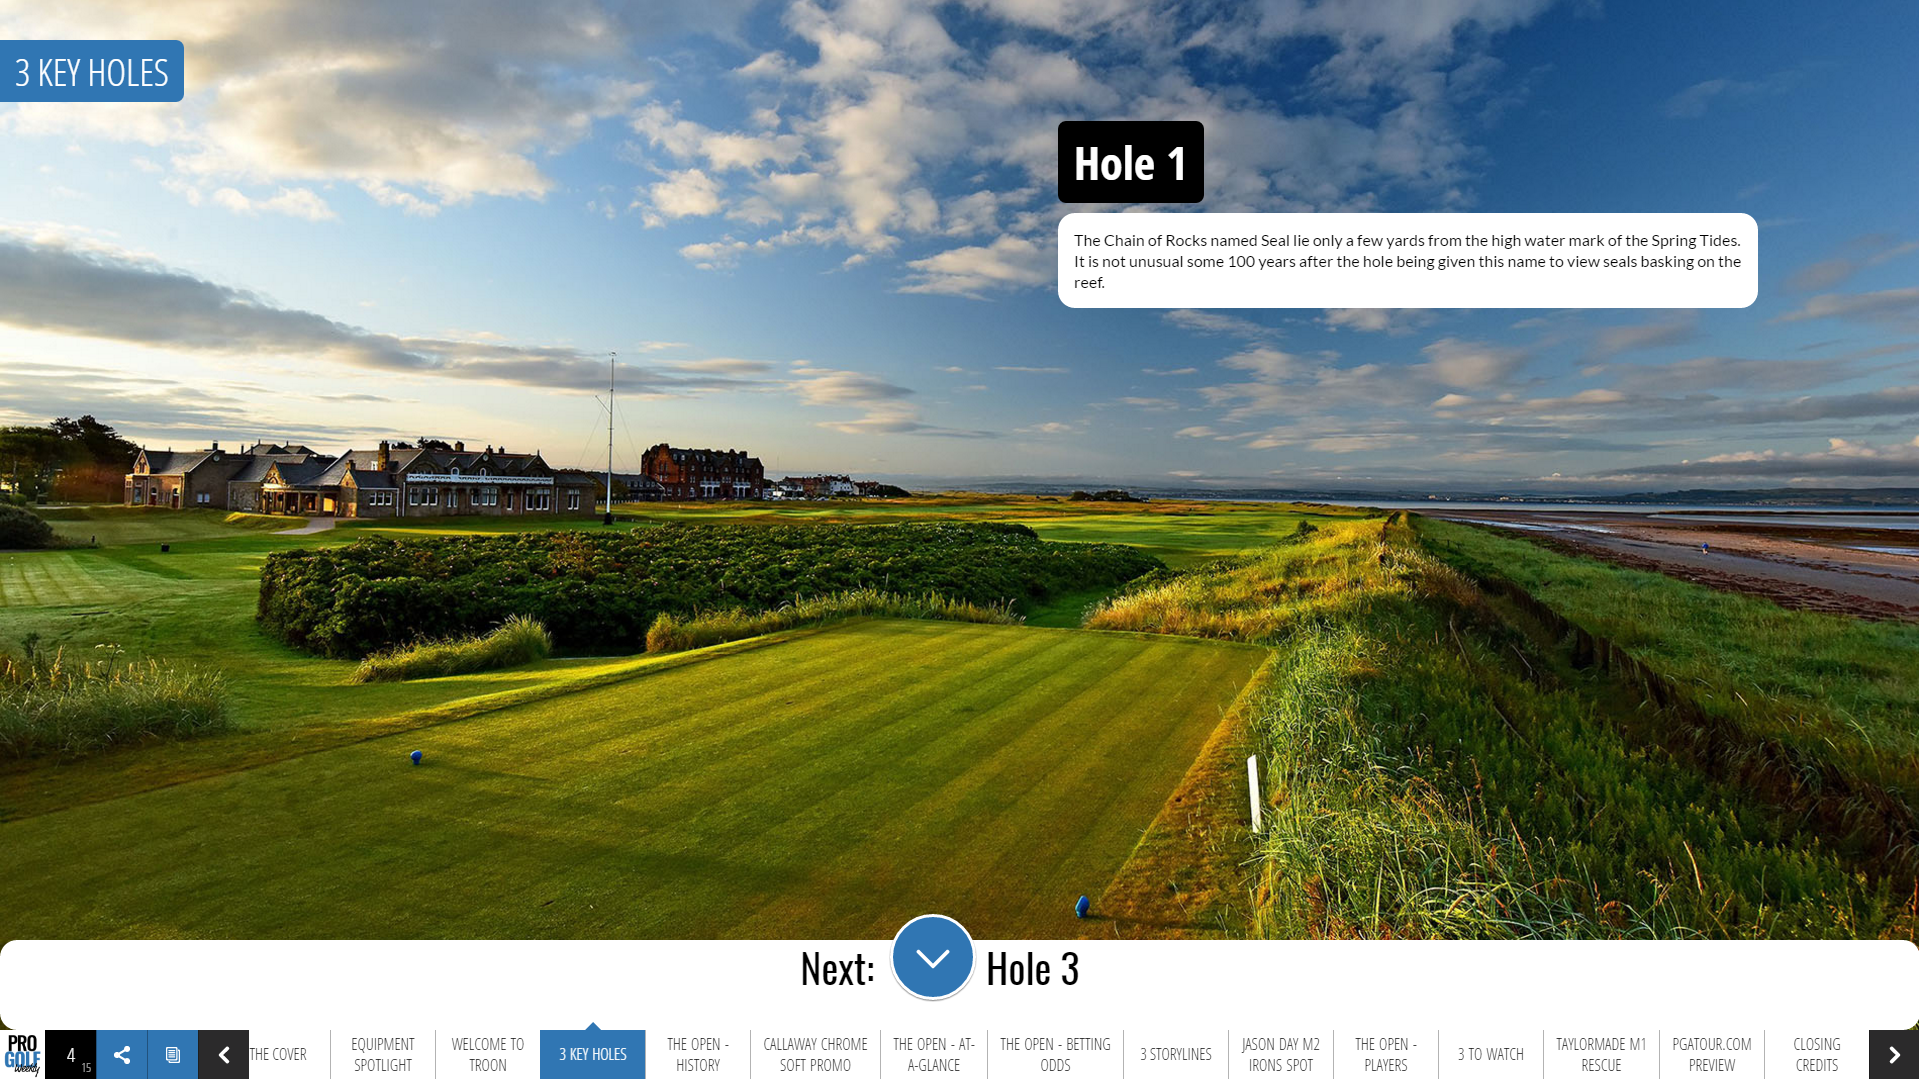 The Key 3 Holes at Royal Troon for the 145th British Open.